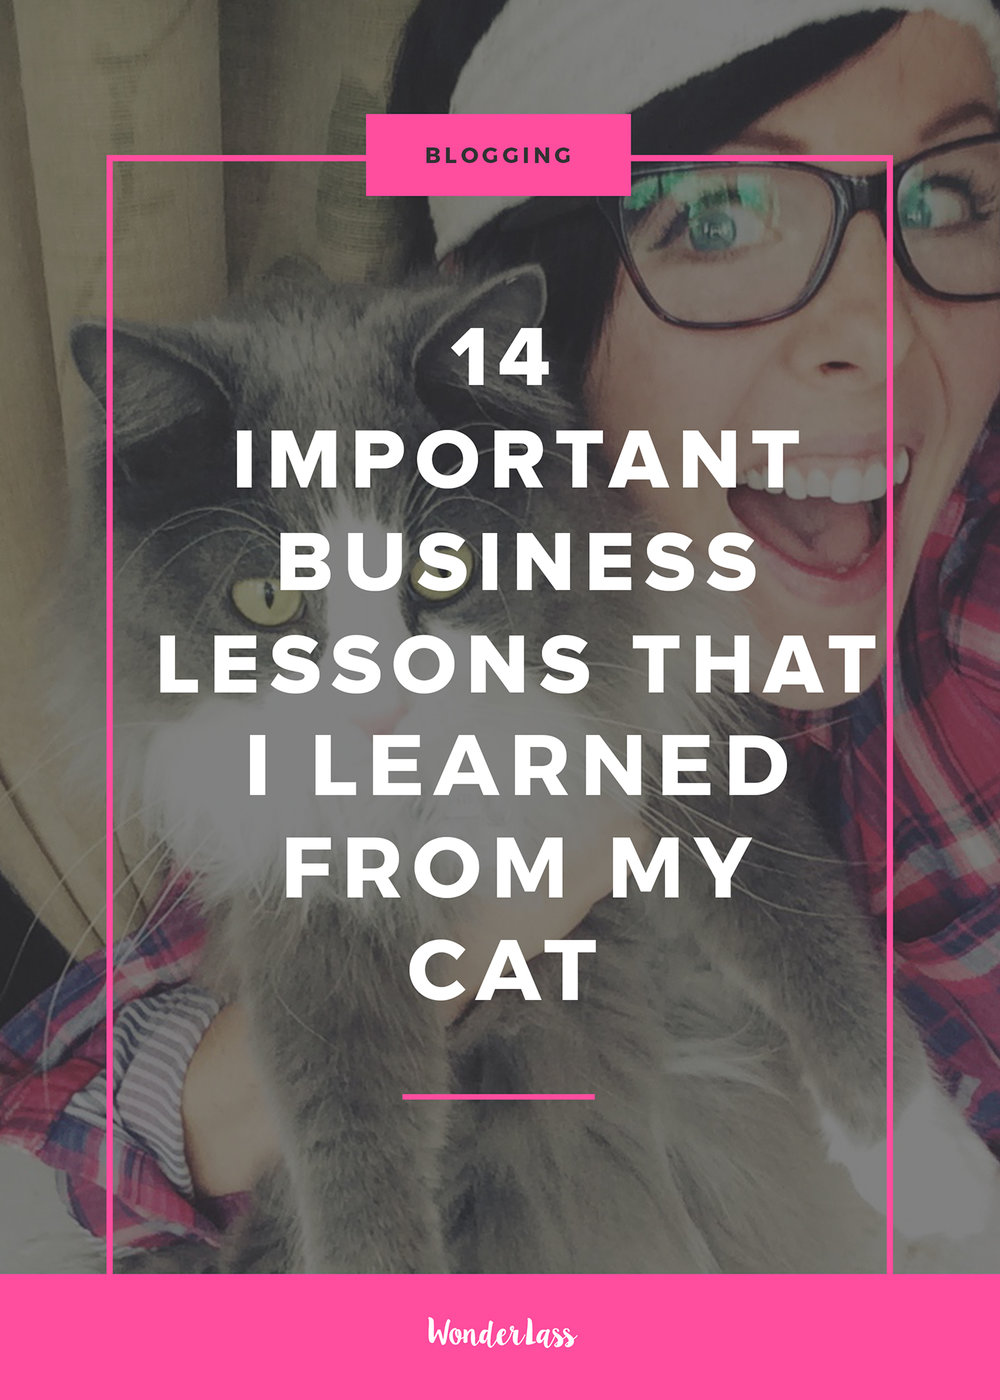 14 Very Important Business Lessons that I Learned From My Cat | Tips for creative entrepreneurs and bloggers who want to run an online business | Wonderlass